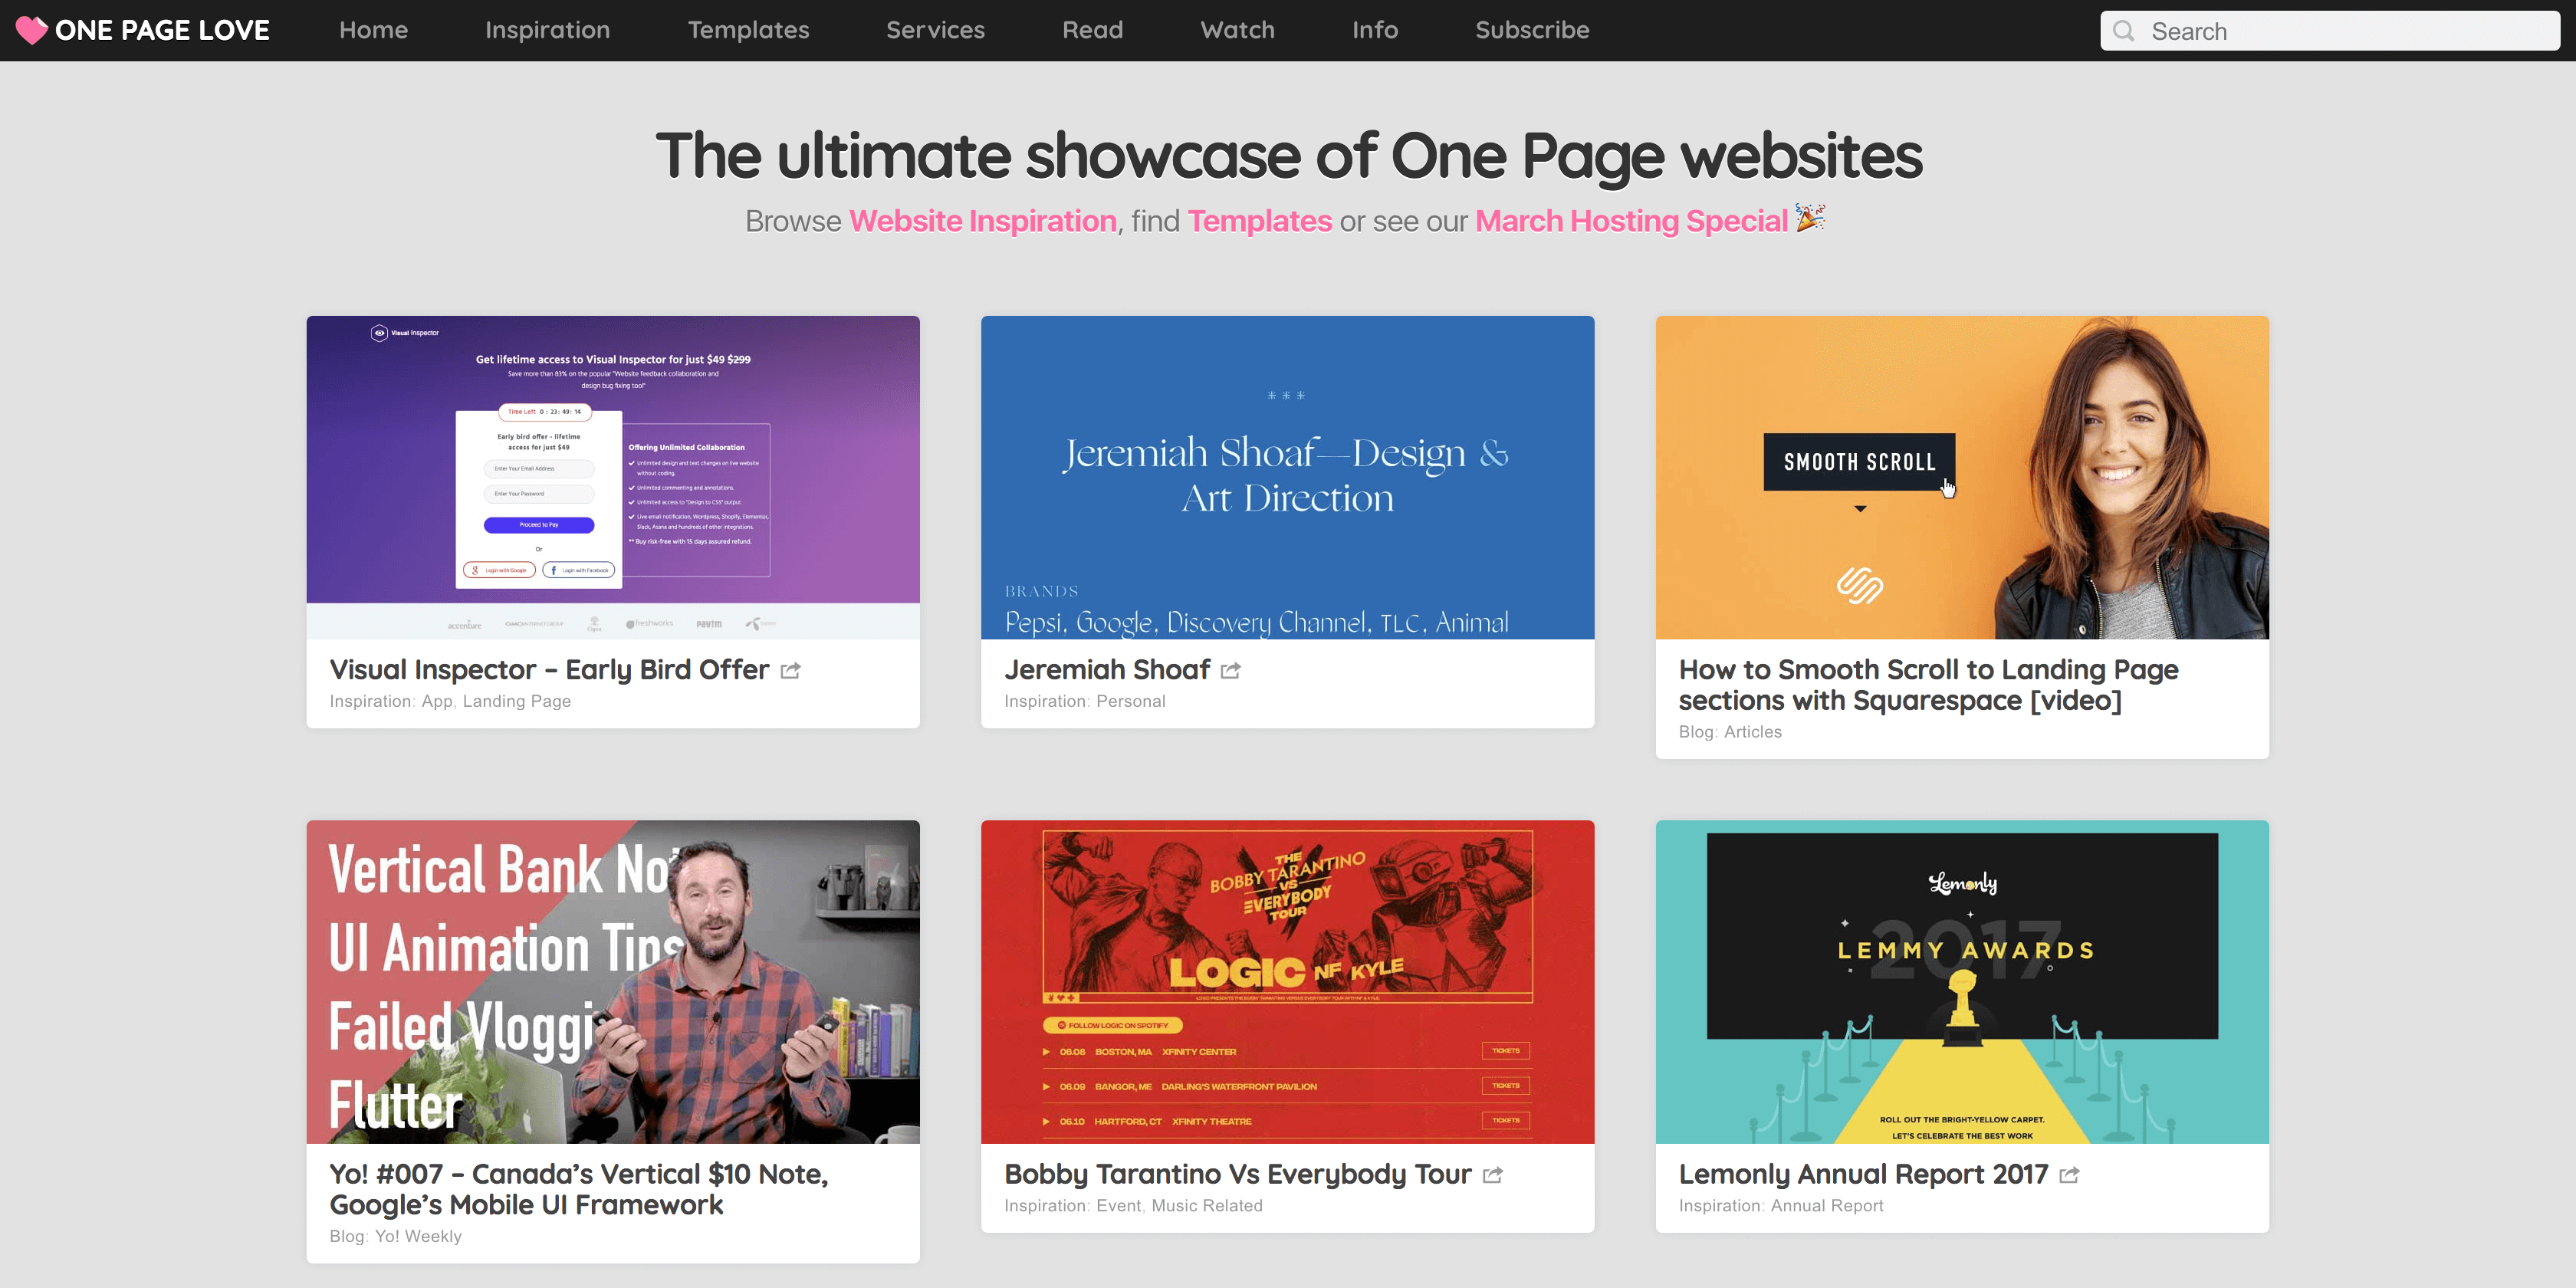 The One Page Love website.